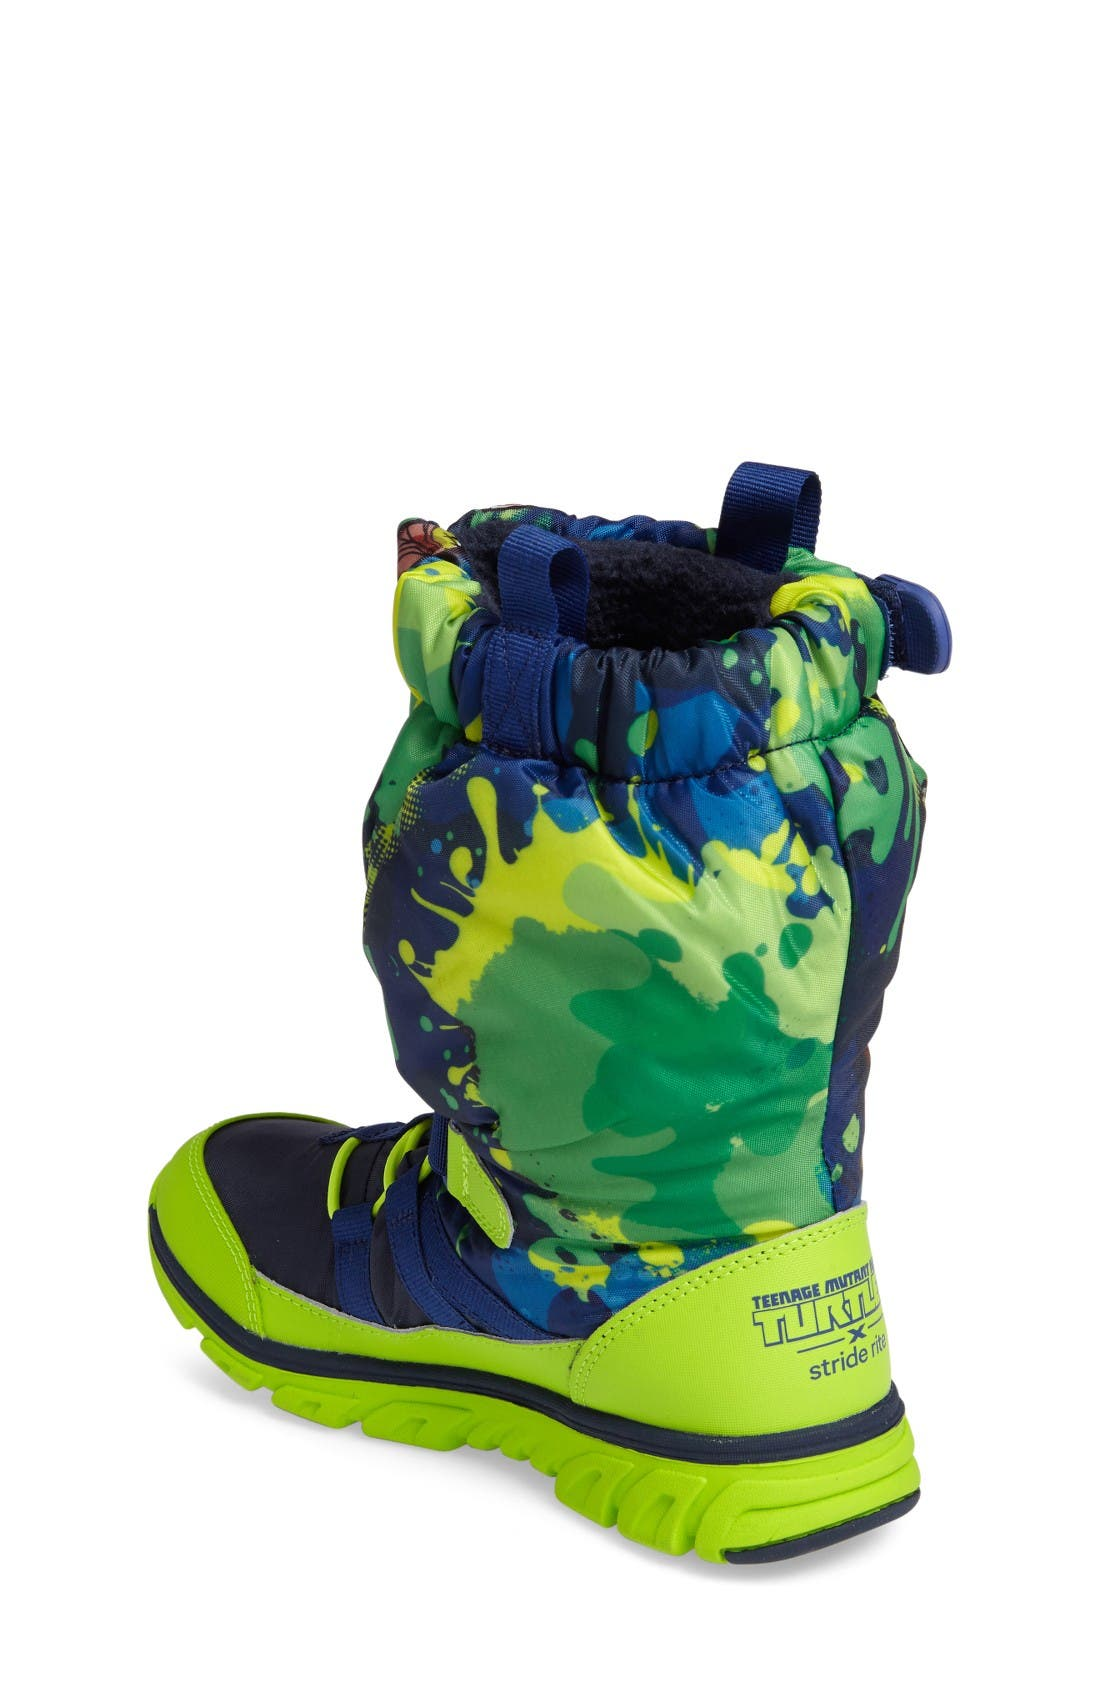 Alternate Image 2  - Stride Rite Made2Play Teenage Mutant Ninja Turtles Sneaker Boot (Baby, Walker, Toddler & Little Kid)